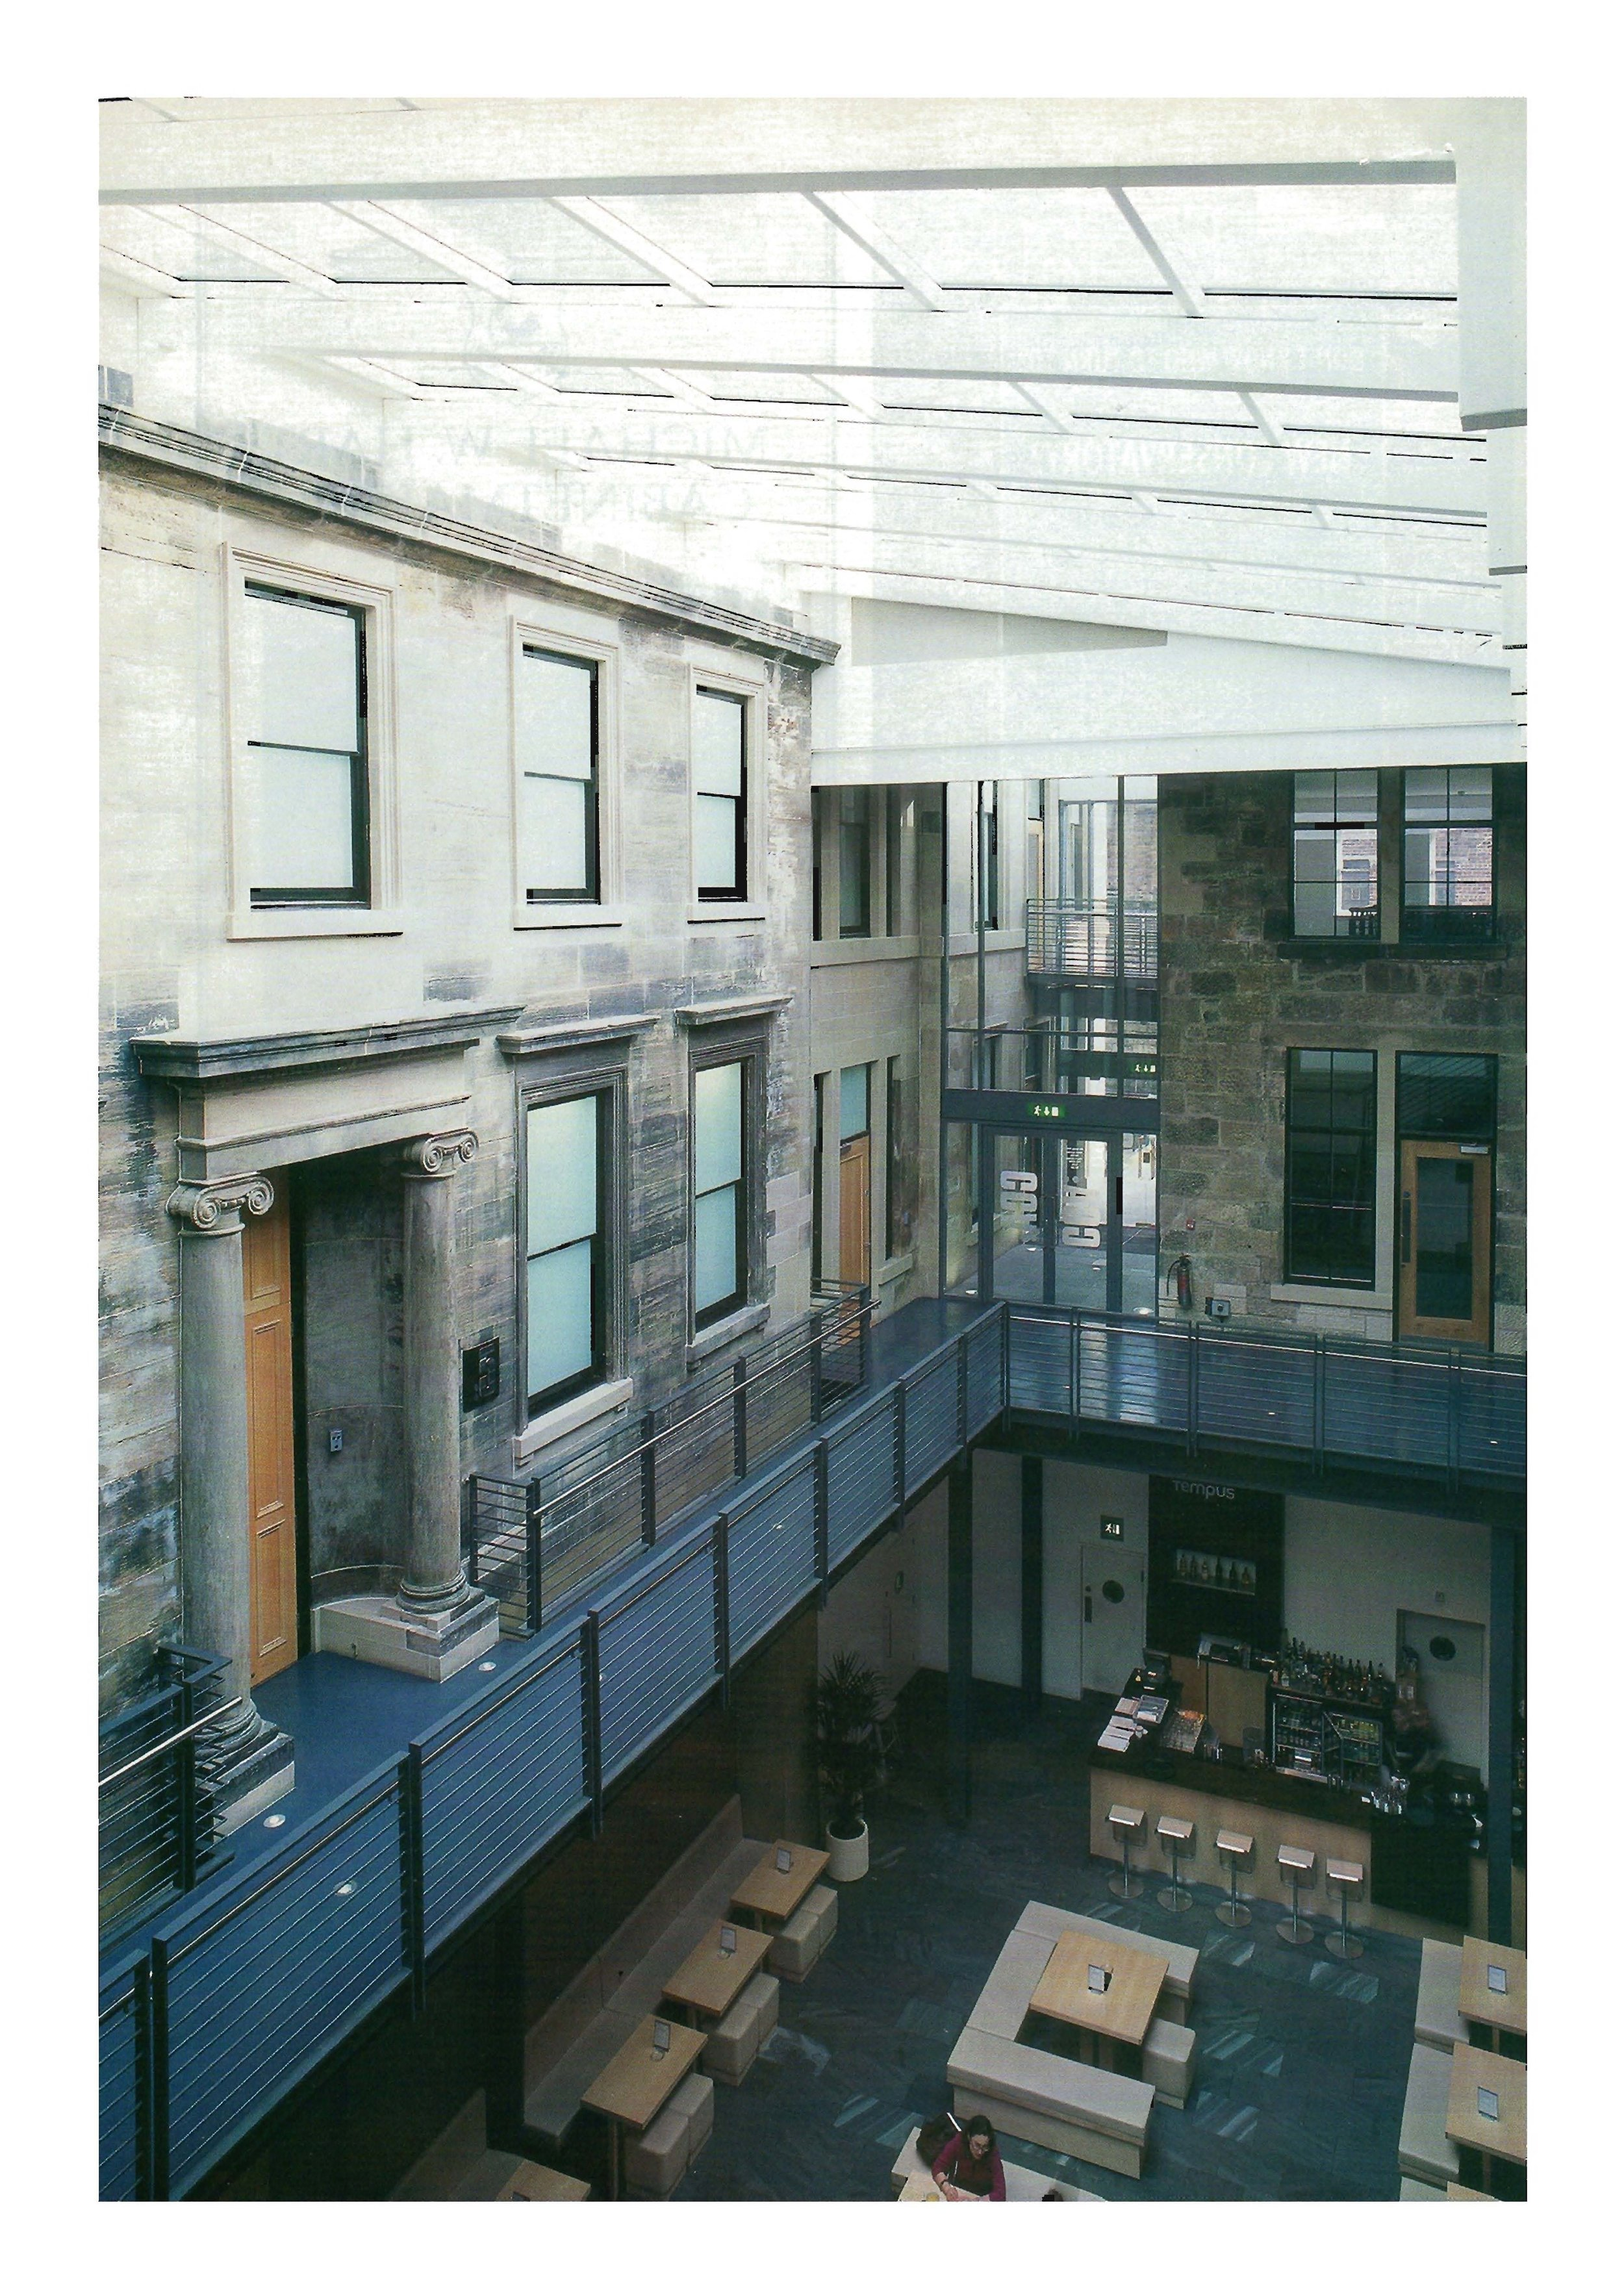 Intoxicating happenings: Glasgow Centre for Contemporary Arts